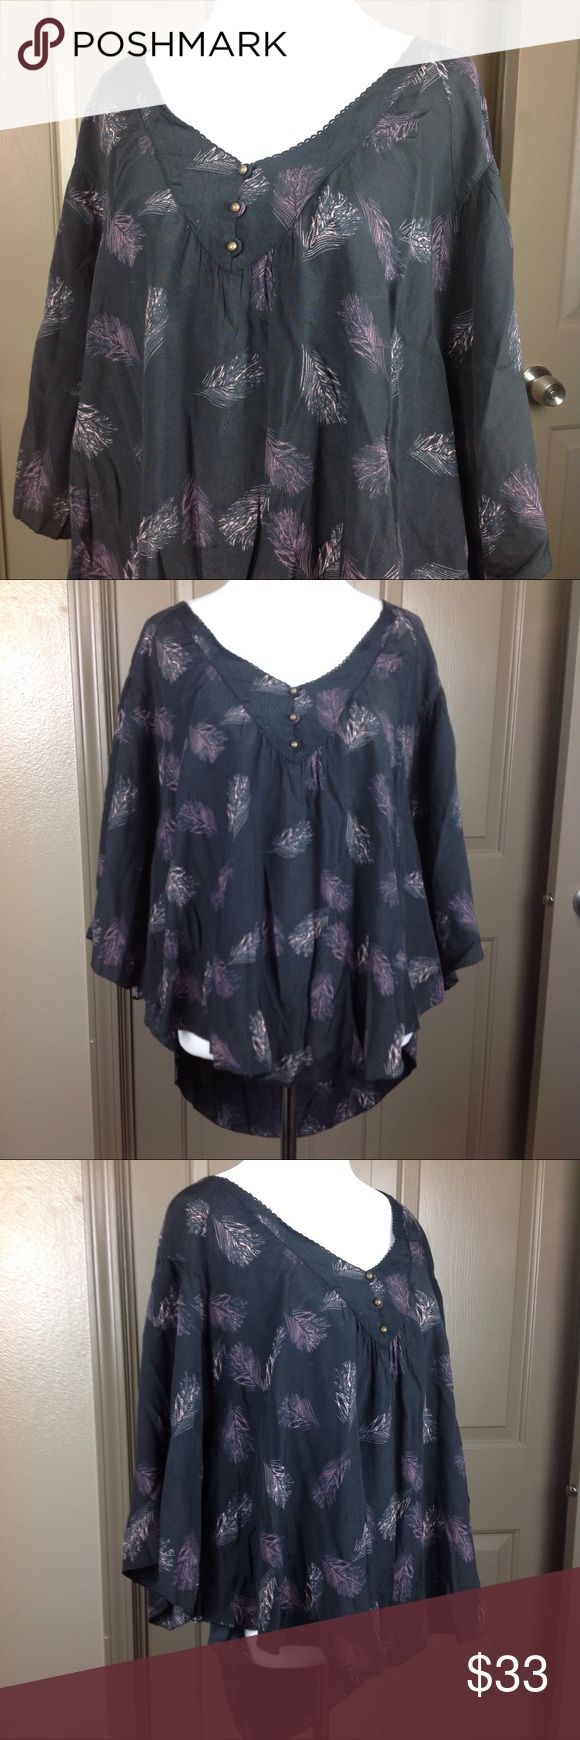 Sanctuary Top Oversize XS Batwing High Low Black Great condition Sanctuary Top Oversize XS Batwing Black with purple/cream feather design 53/47 viscose/rayon high/low 23/27 inch length 19 inch across bust Sanctuary Tops Blouses